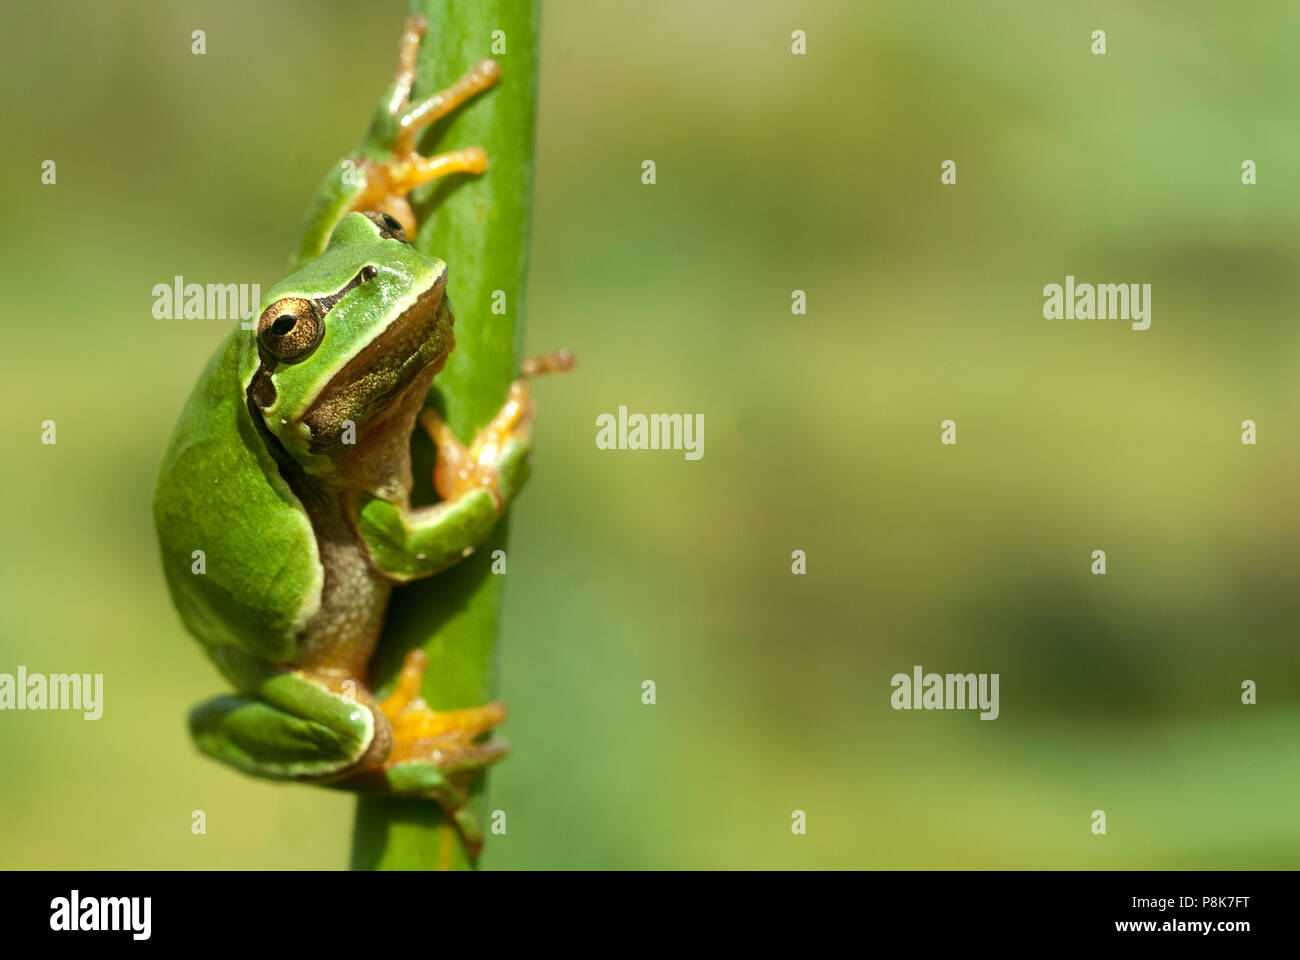 Pretty amphibian green European tree frog, Hyla arborea, sitting on the grass, Spain Stock Photo